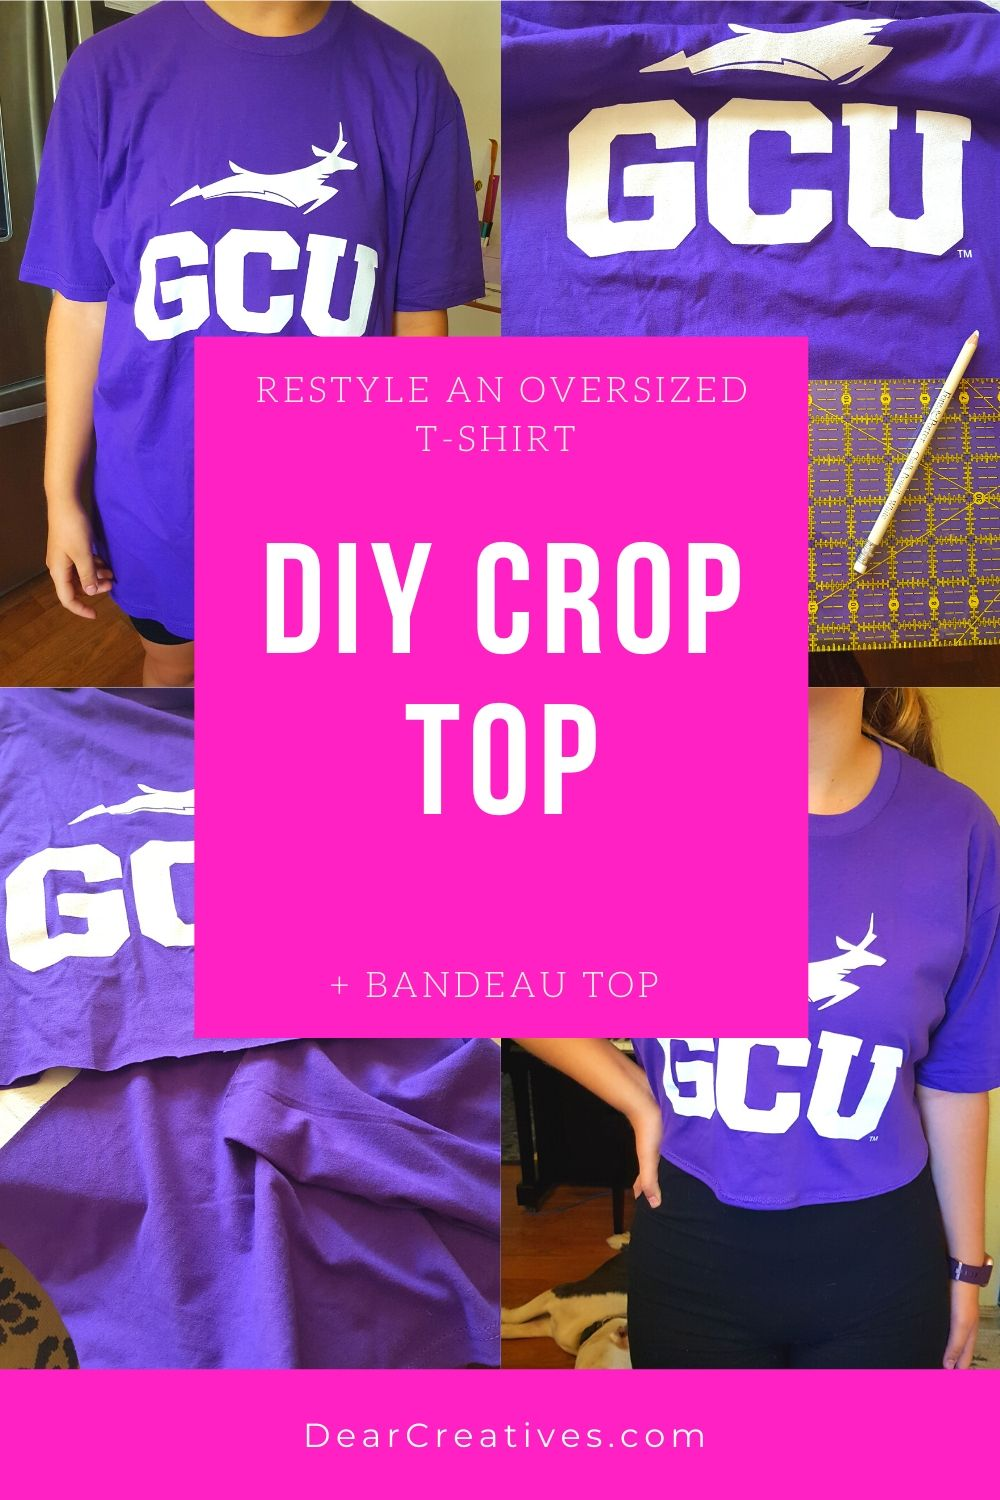 DIY Crop Top – Sew And No Sew Instructions